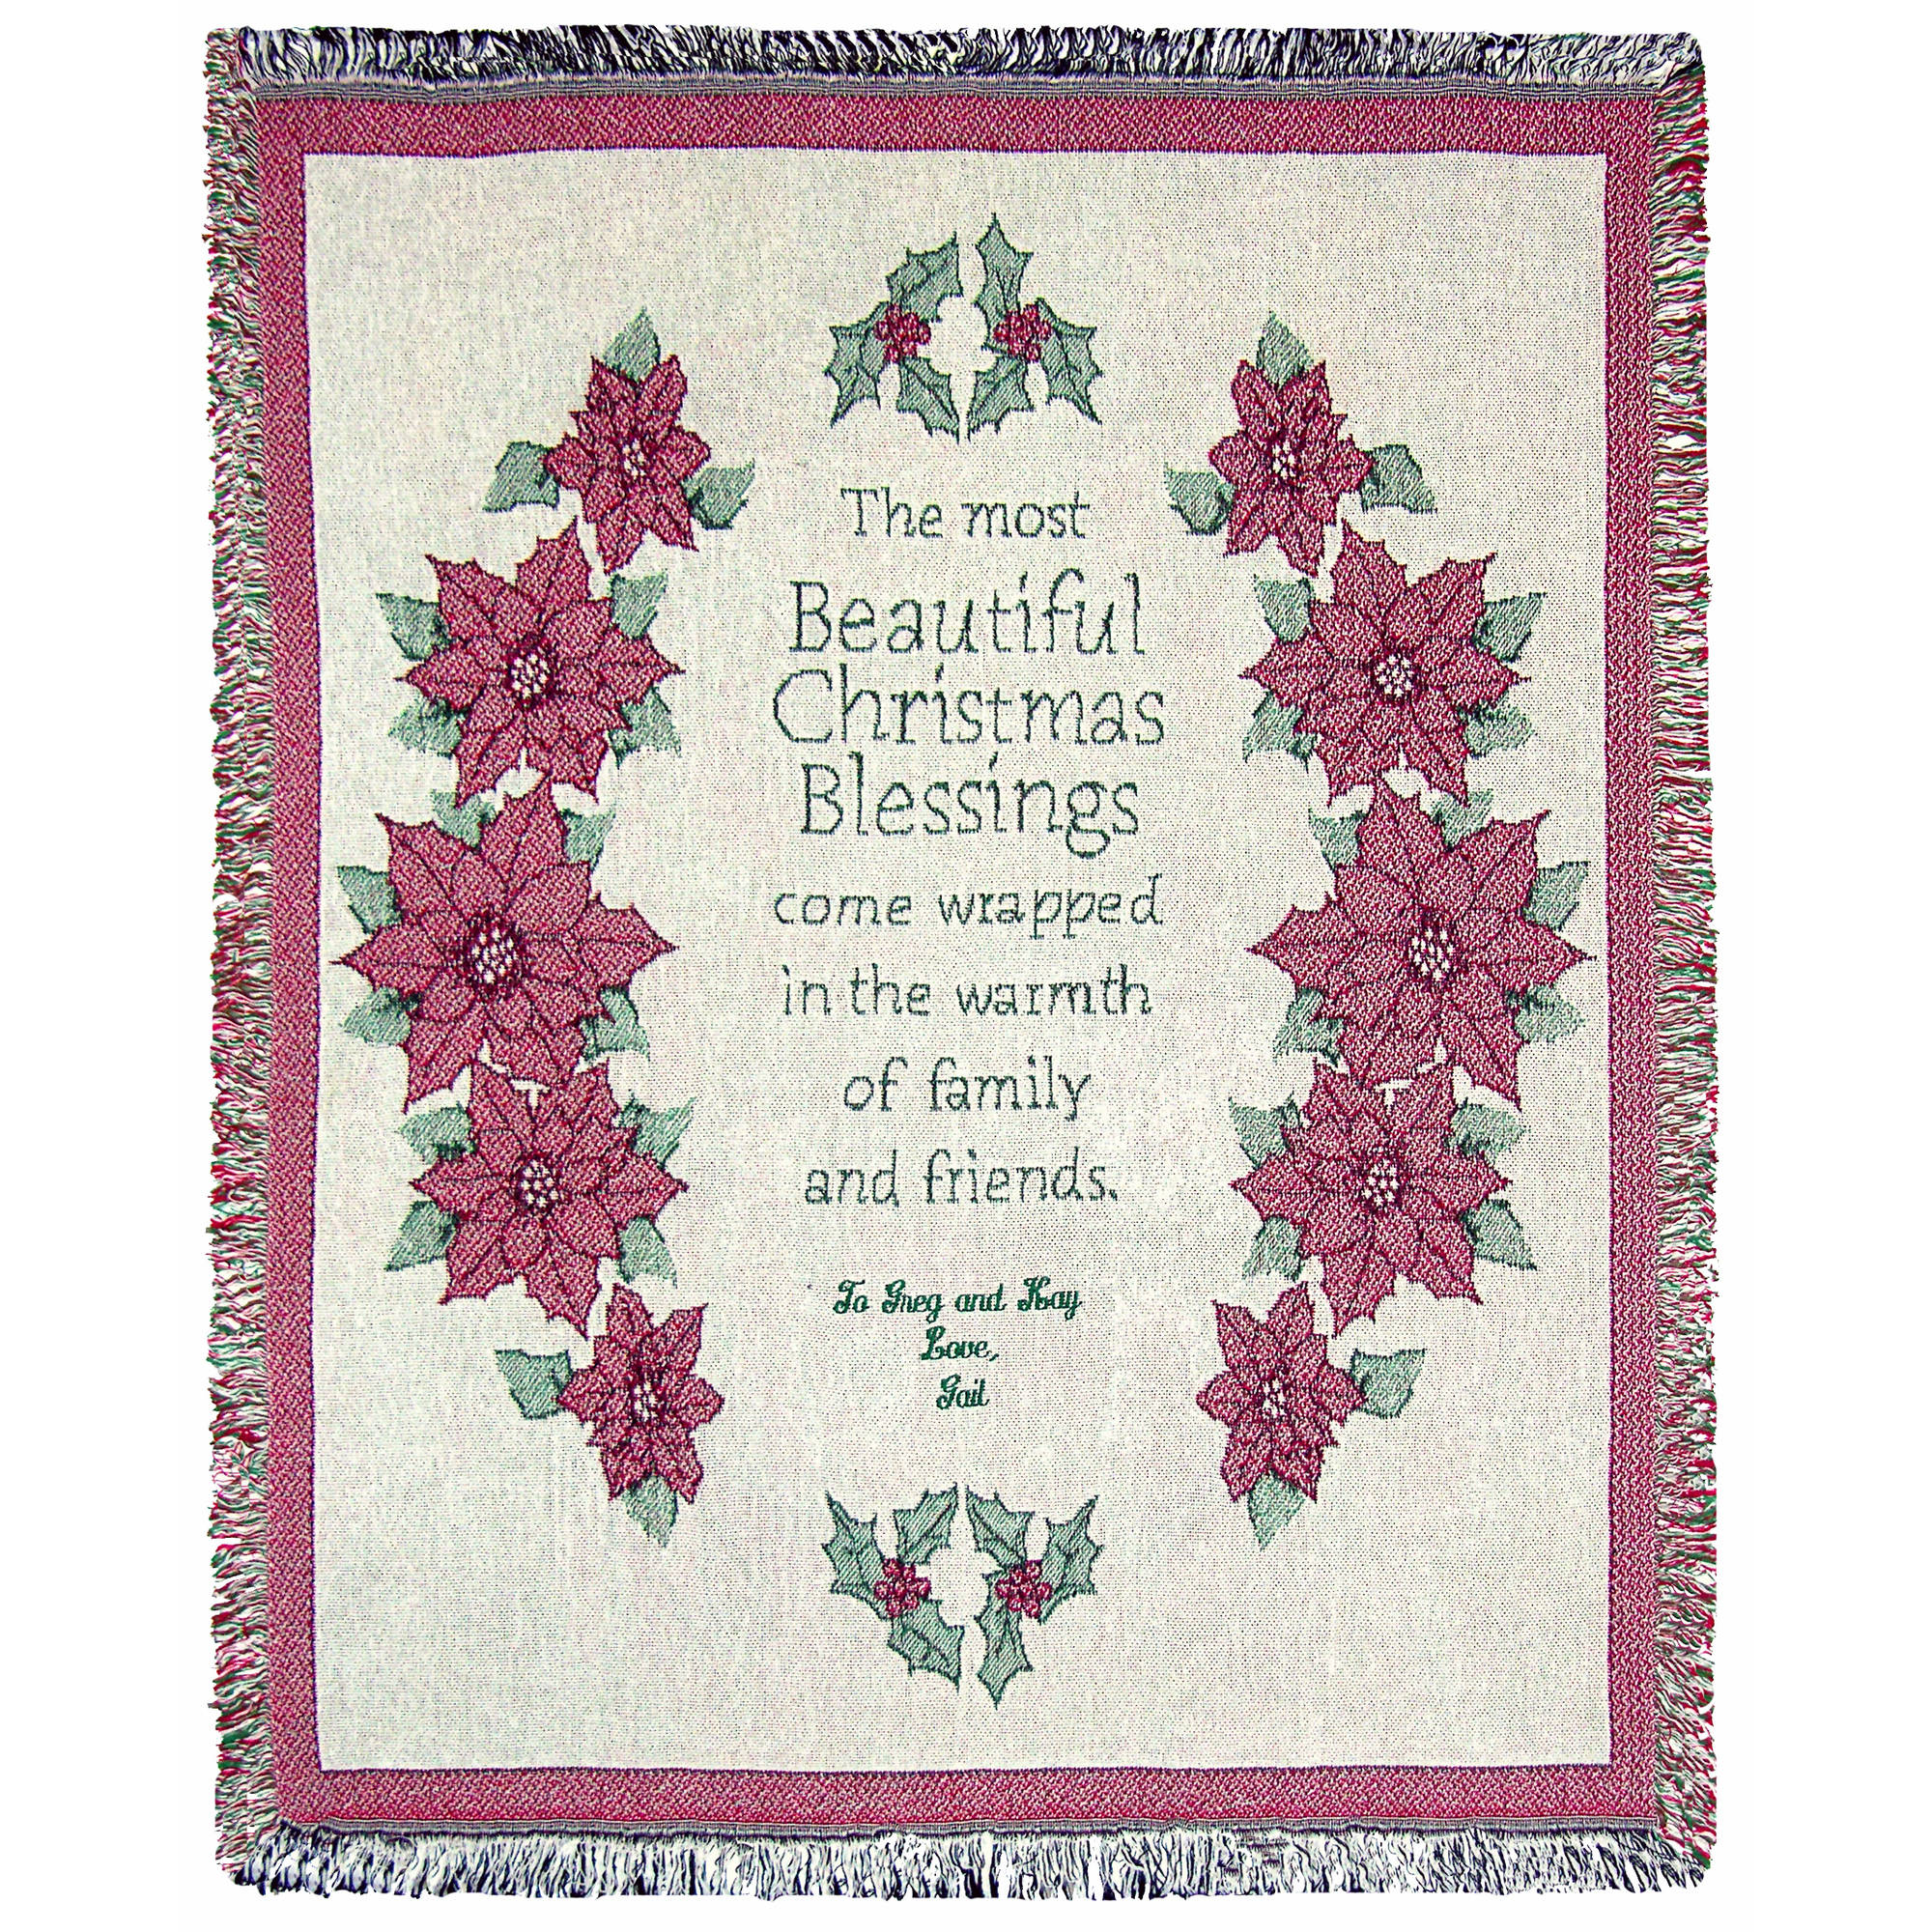 Personalized Christmas Blessings Poinsettia Throw